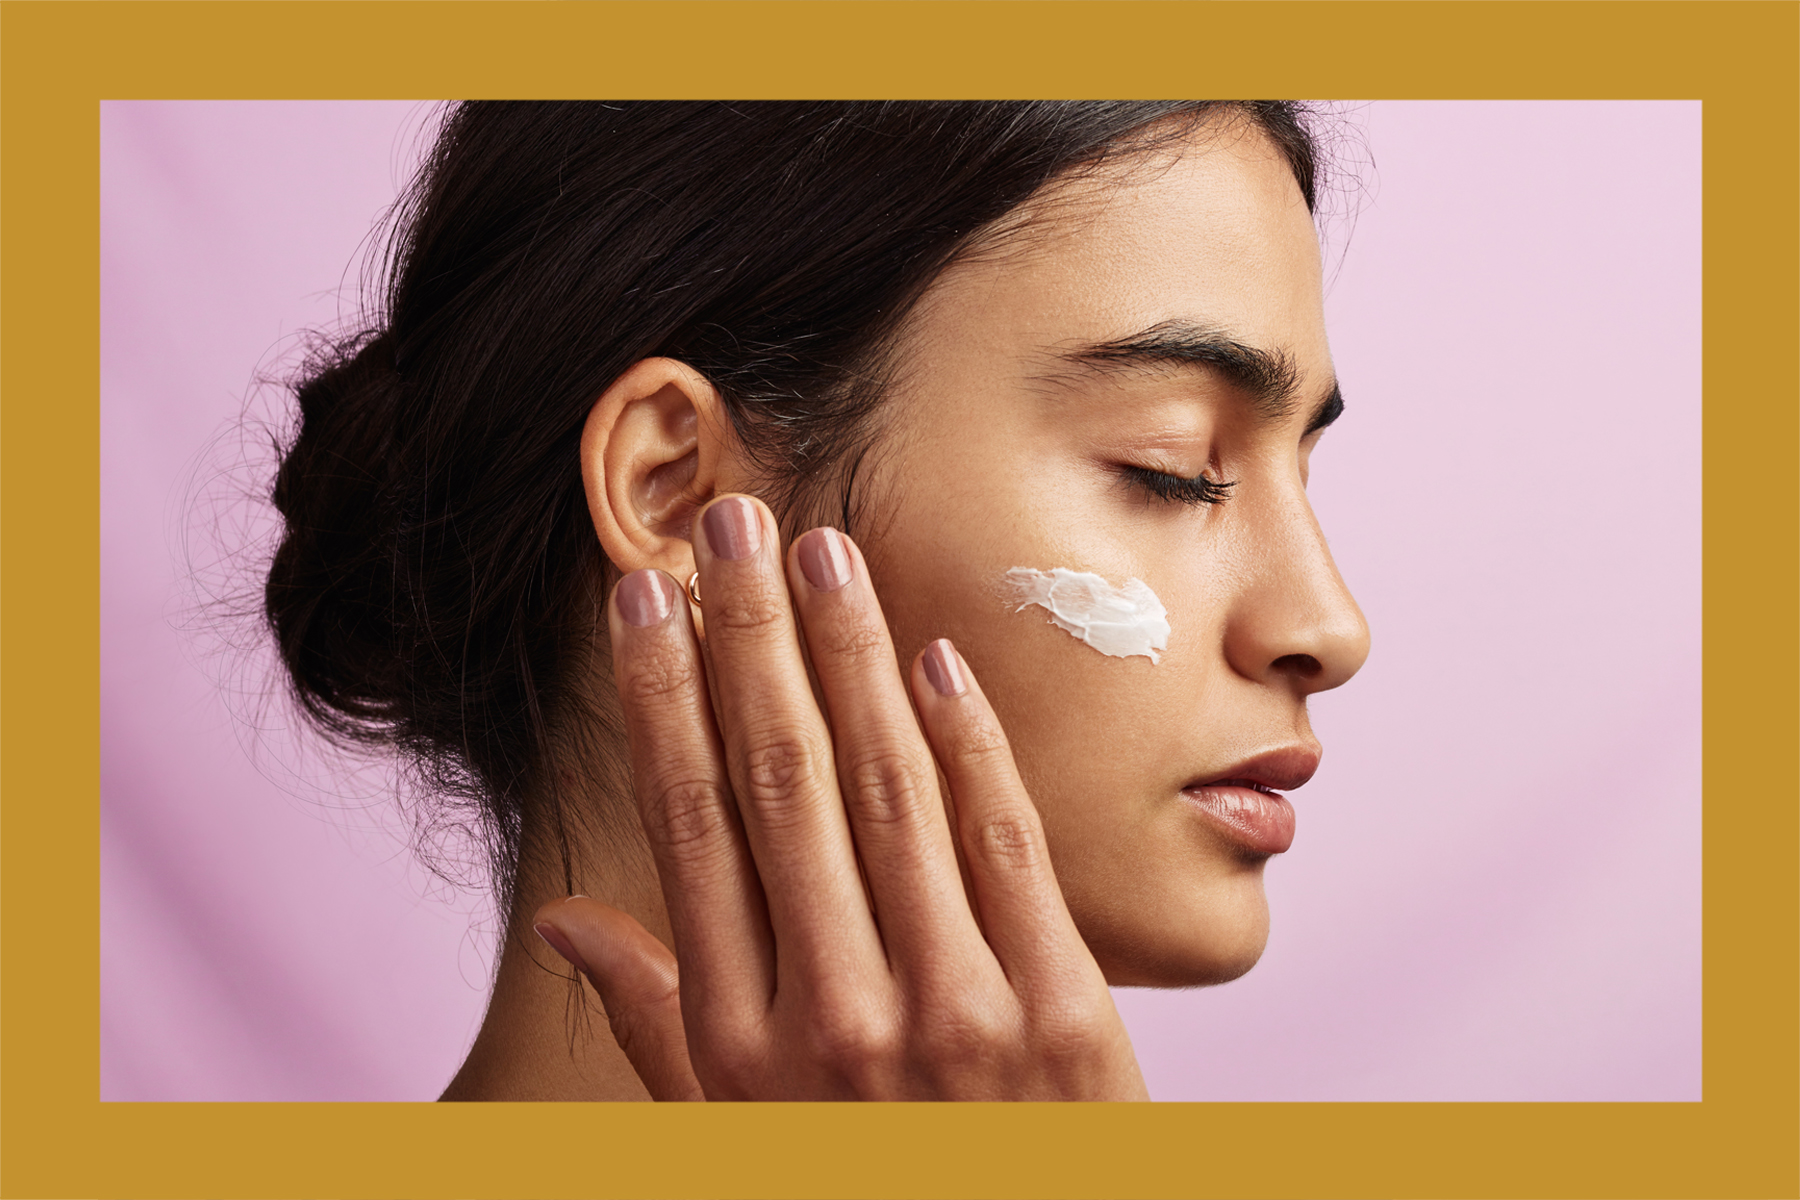 skincare ingredients you shouldn't mix